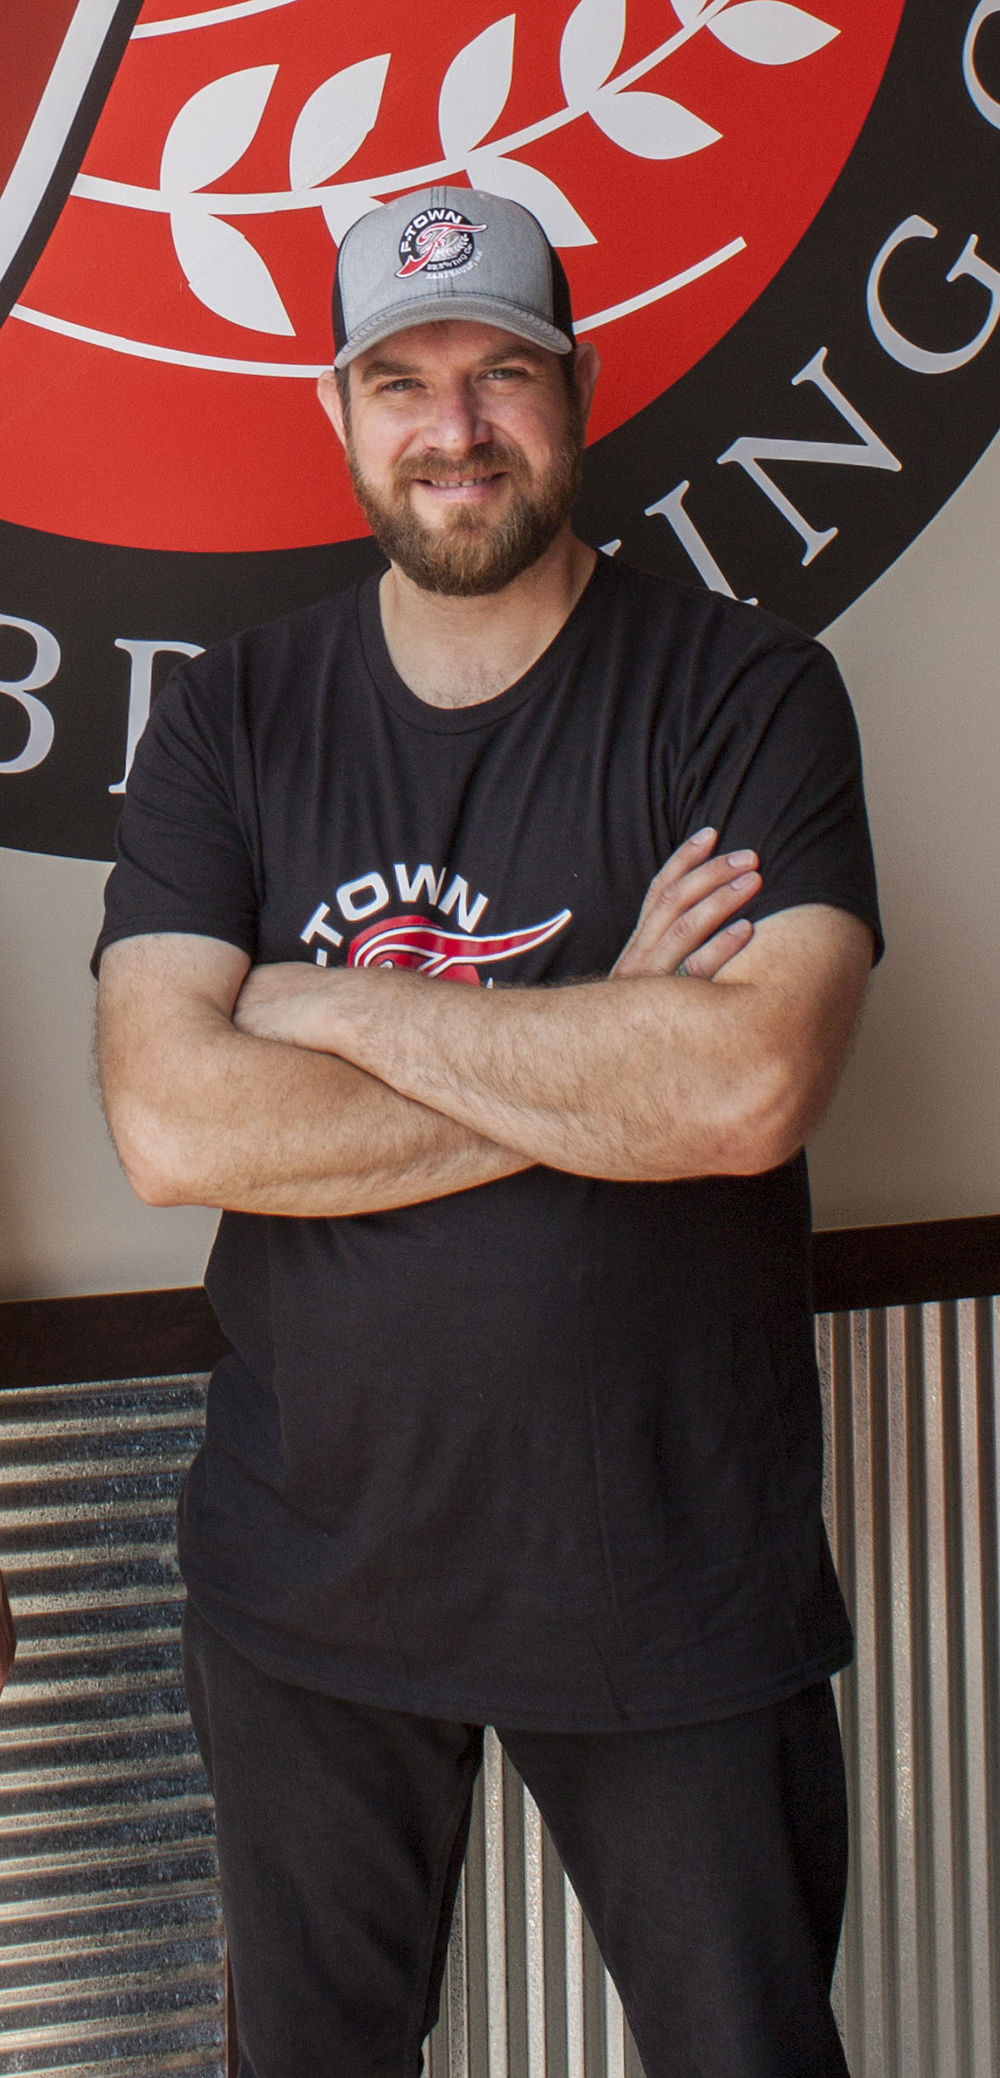 Travis Temke at F-Town Brewing in Faribault, Minnesota in July of 2015 // Photo by Brian Kaufenberg, The Growler